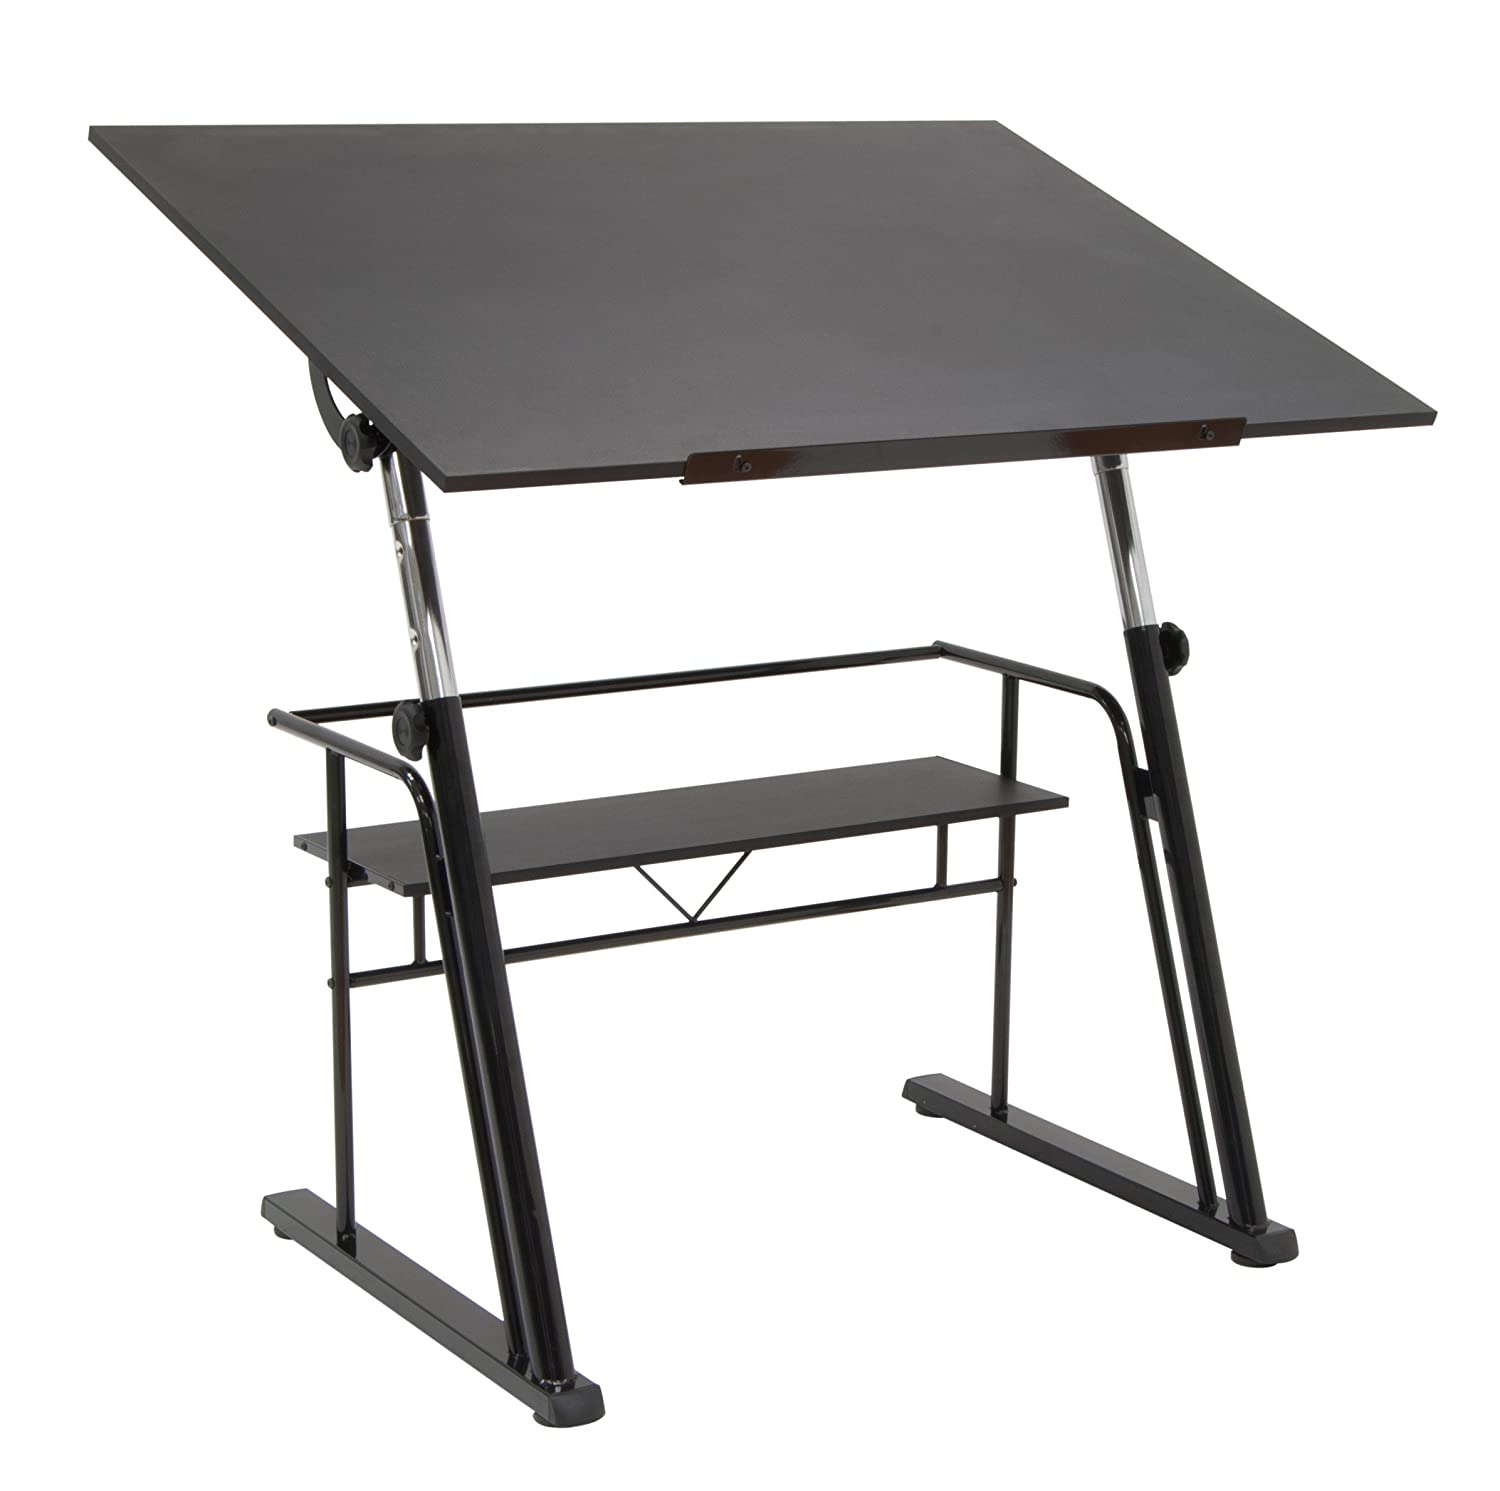 center hopper reconditioned mayline x drafting top with is s usedtables size metal and used straightedge tables furniture drawer tool a listings post table edge